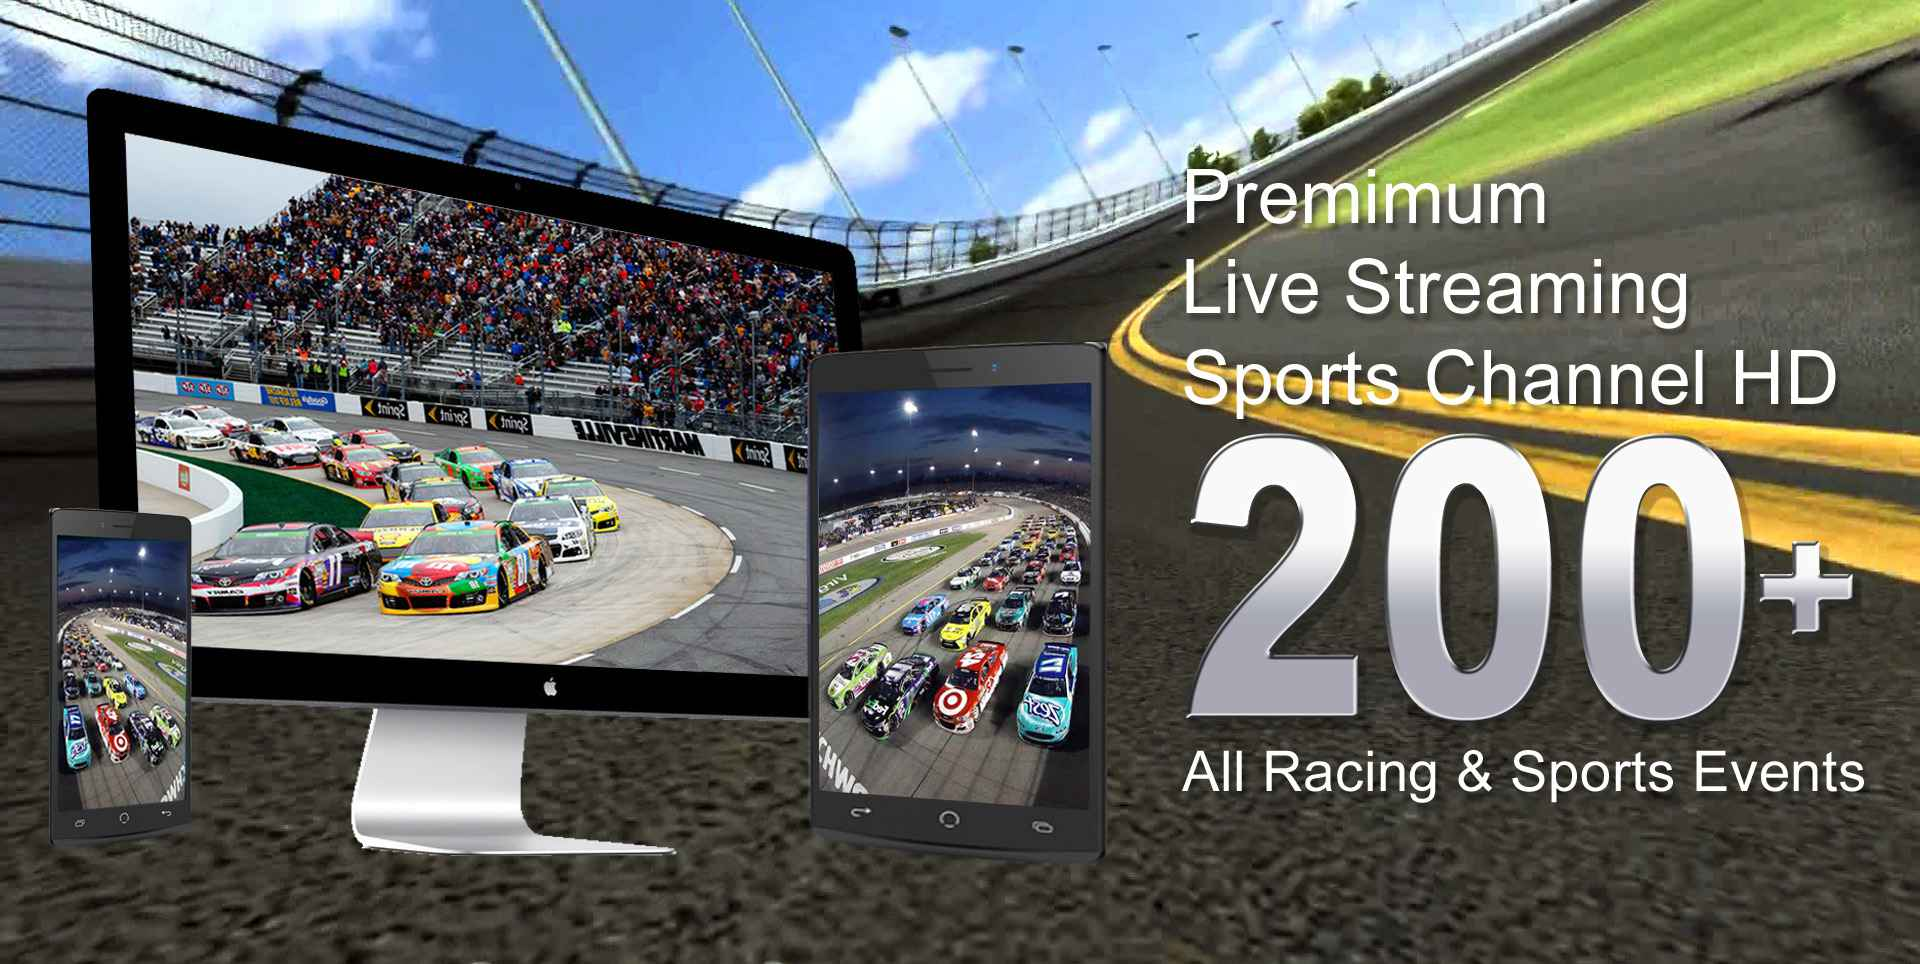 2016 NASCAR Sprint Citizen Soldier 400 Live